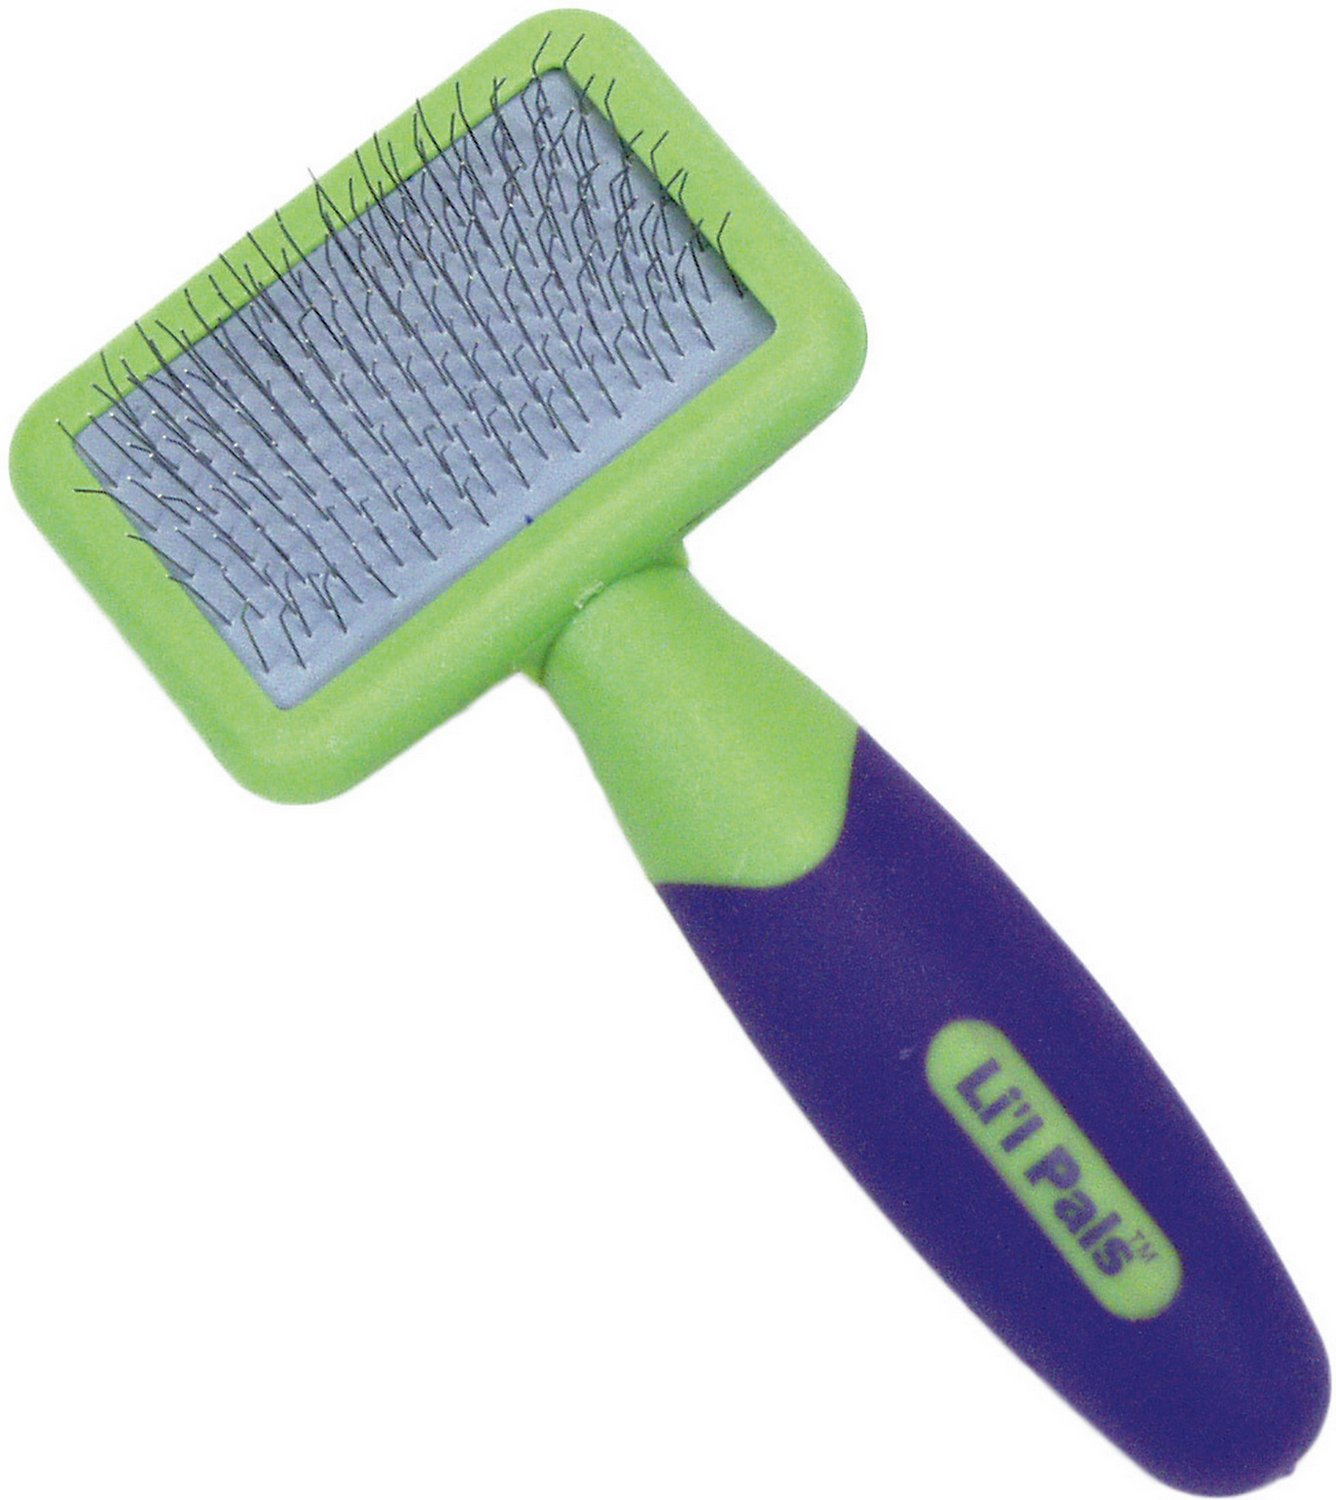 What Is A Slicker Brush For Dog Grooming